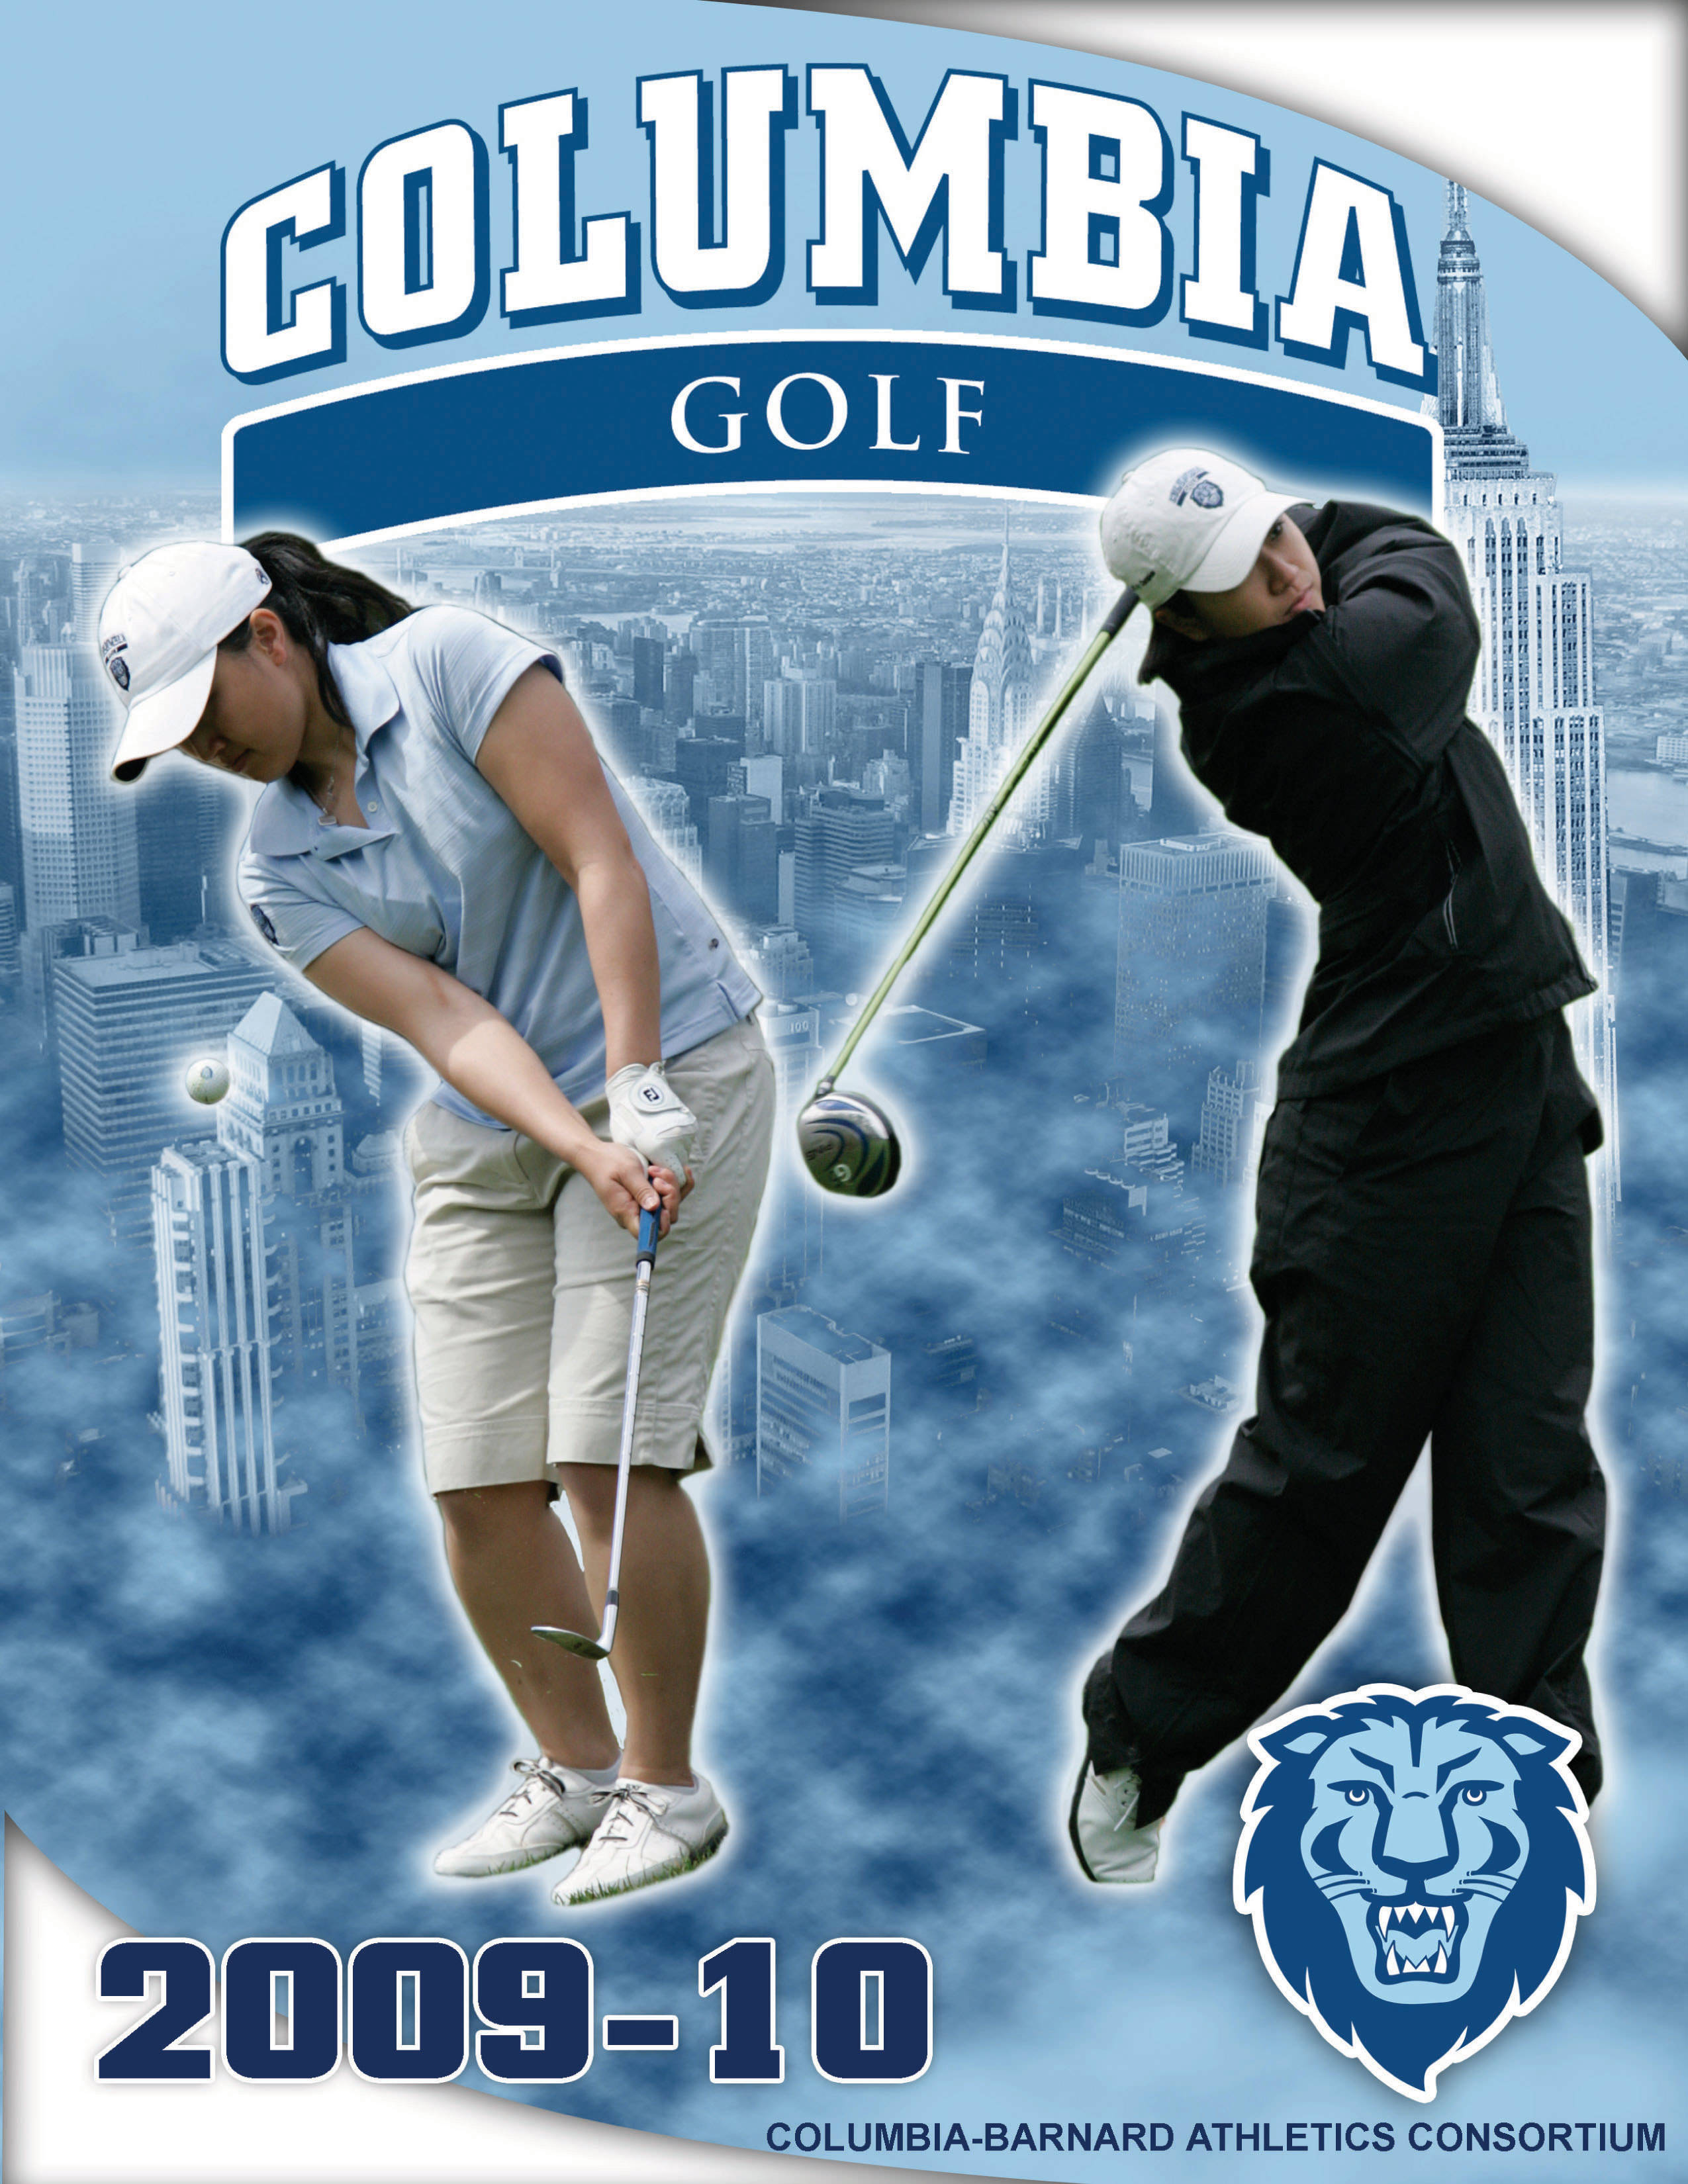 2009-10 Columbia University Women's Golf Media Guide Now ...